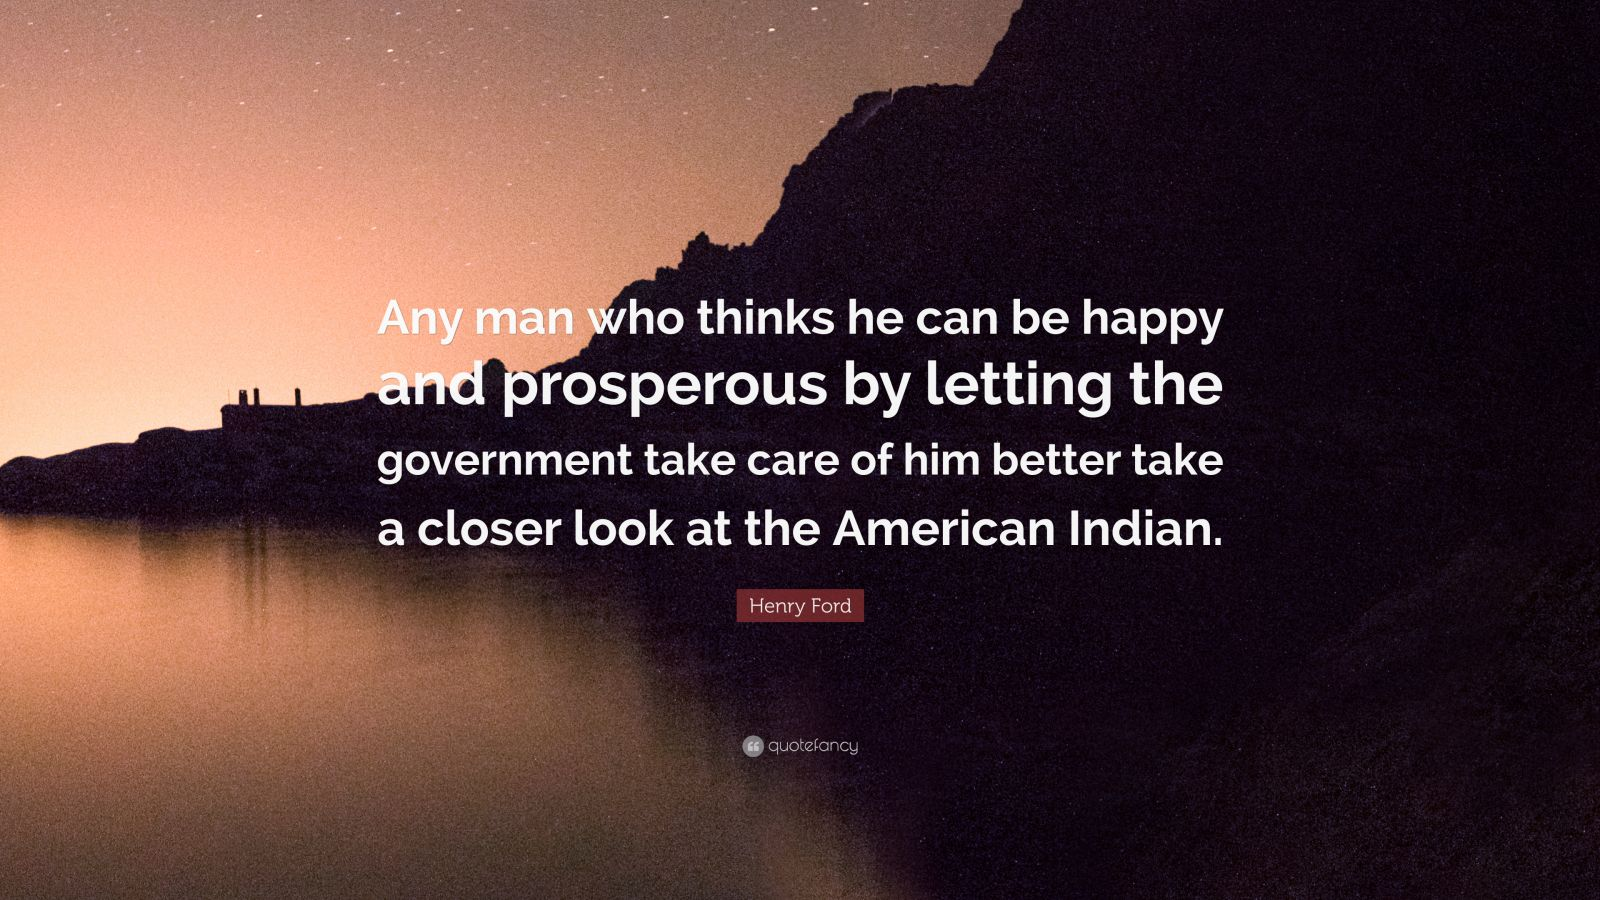 """Henry Ford Quote: """"Any man who thinks he can be happy and prosperous by letting the government take care of him better take a closer look at the American Indian."""""""